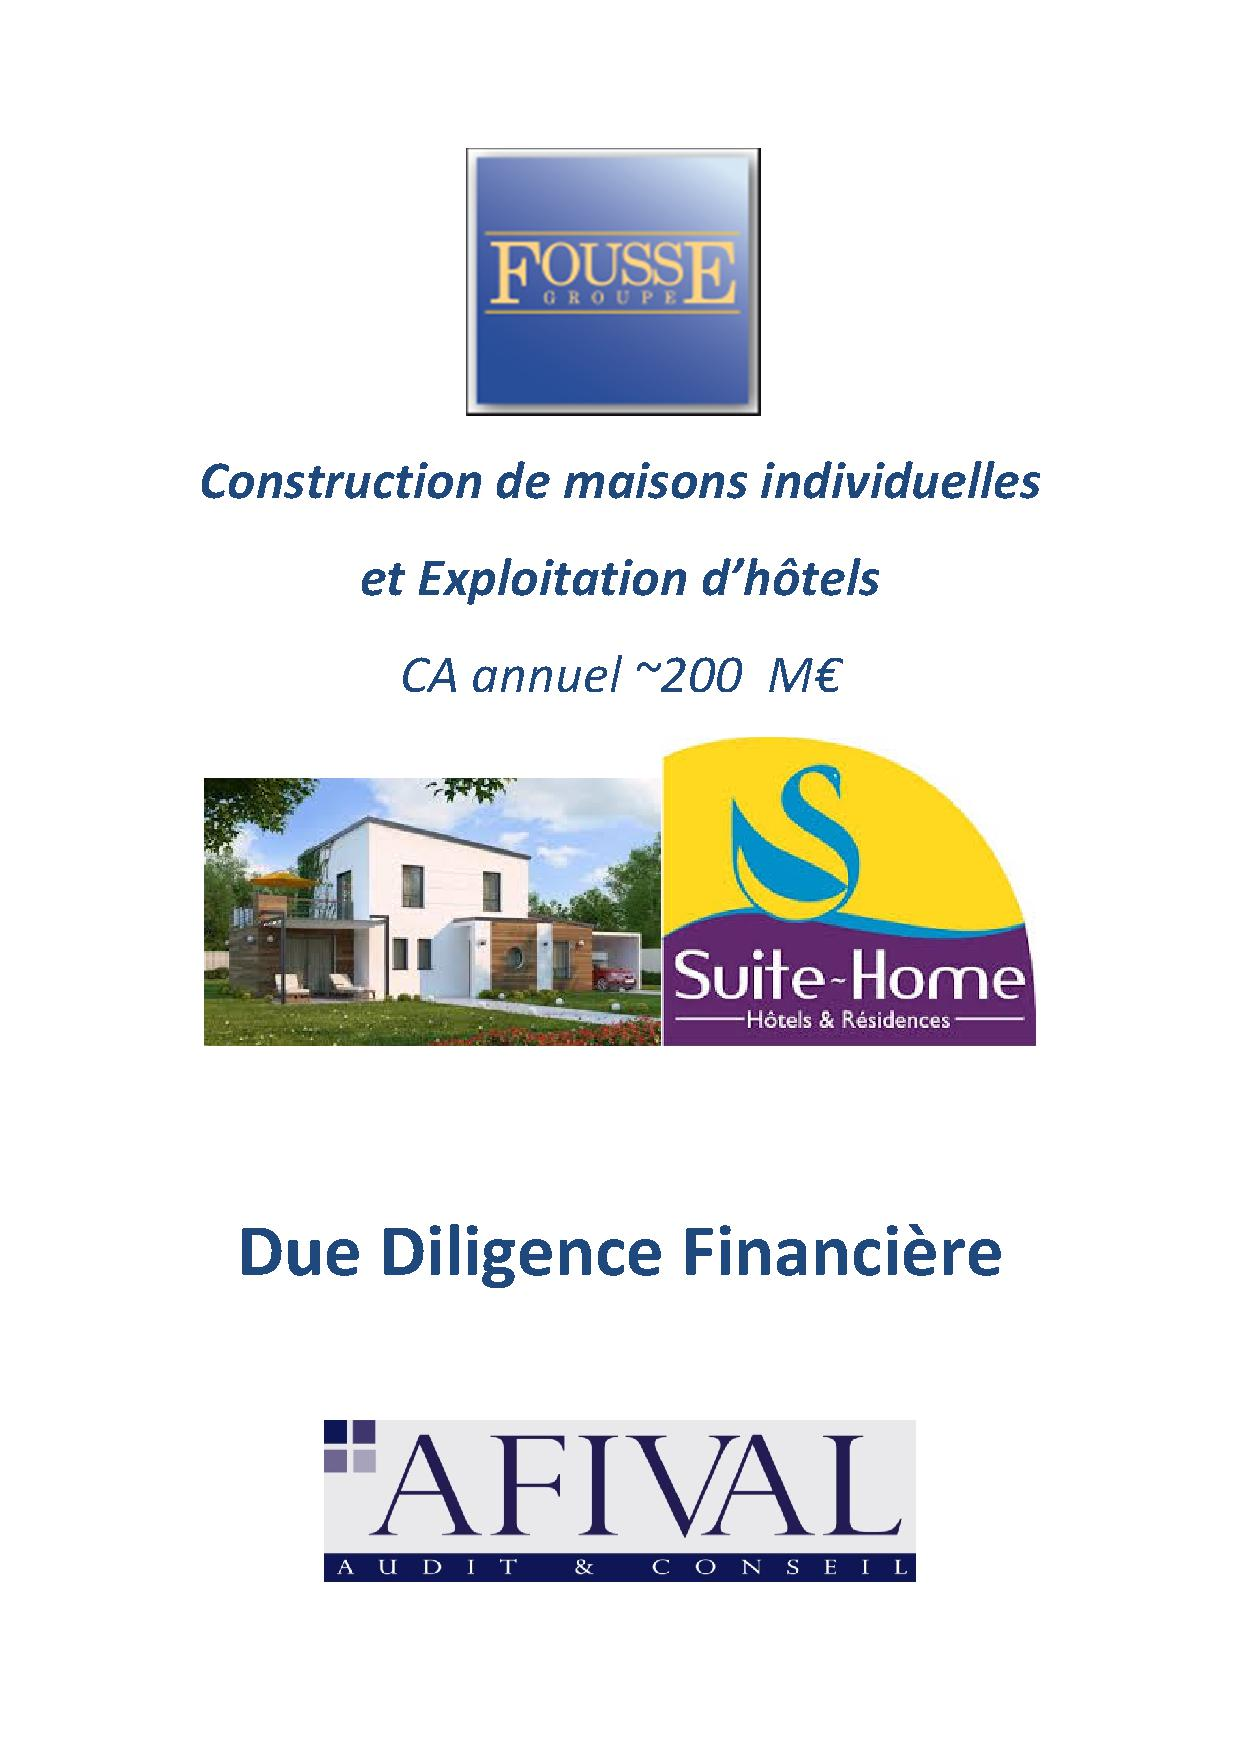 Deal fousse